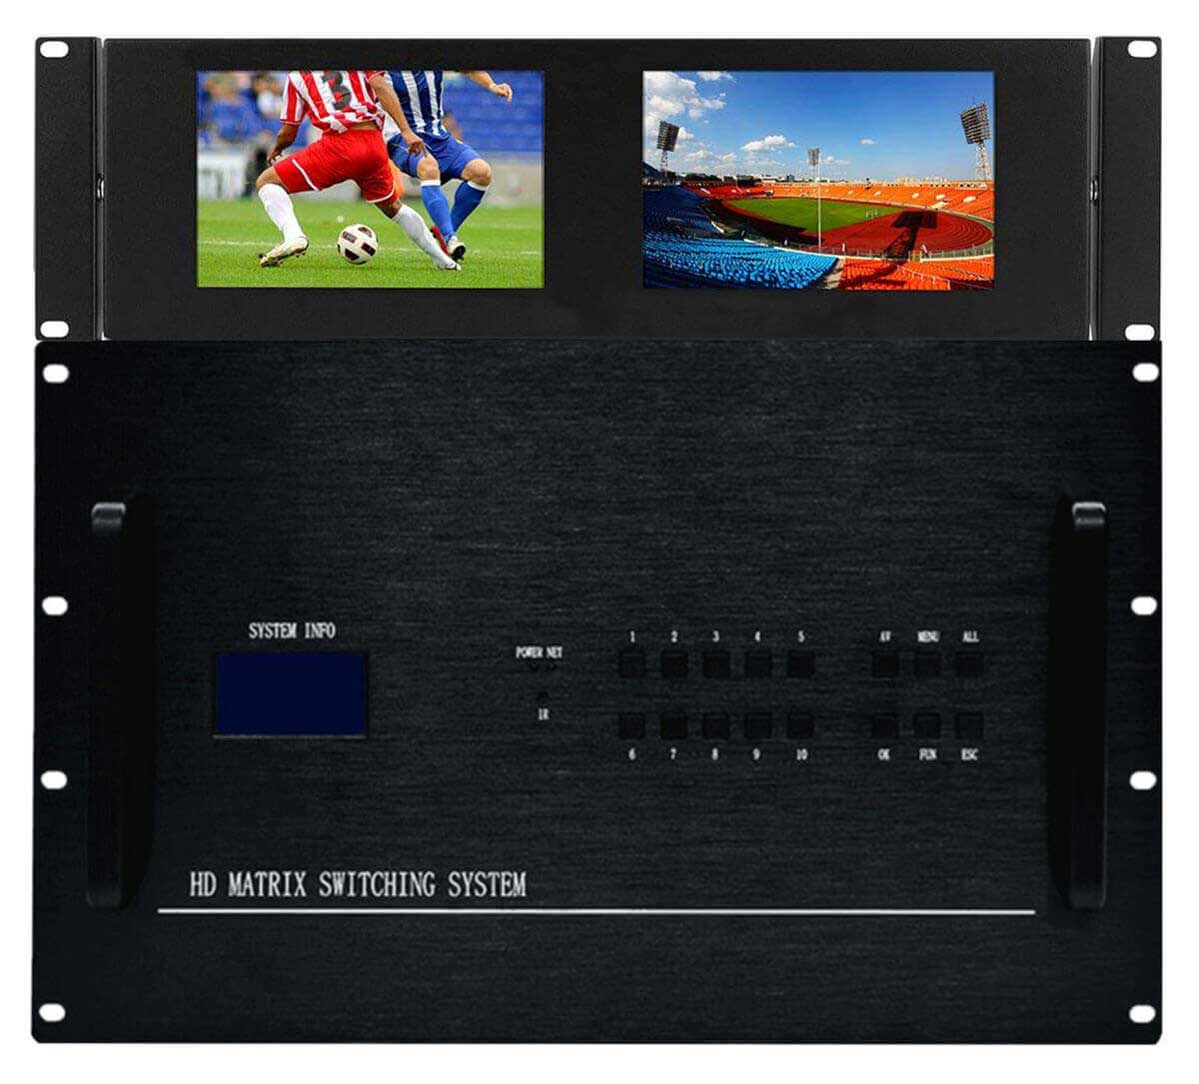 4K 28x8 HDMI Matrix HDBaseT Switch with 8-CAT5 Extenders